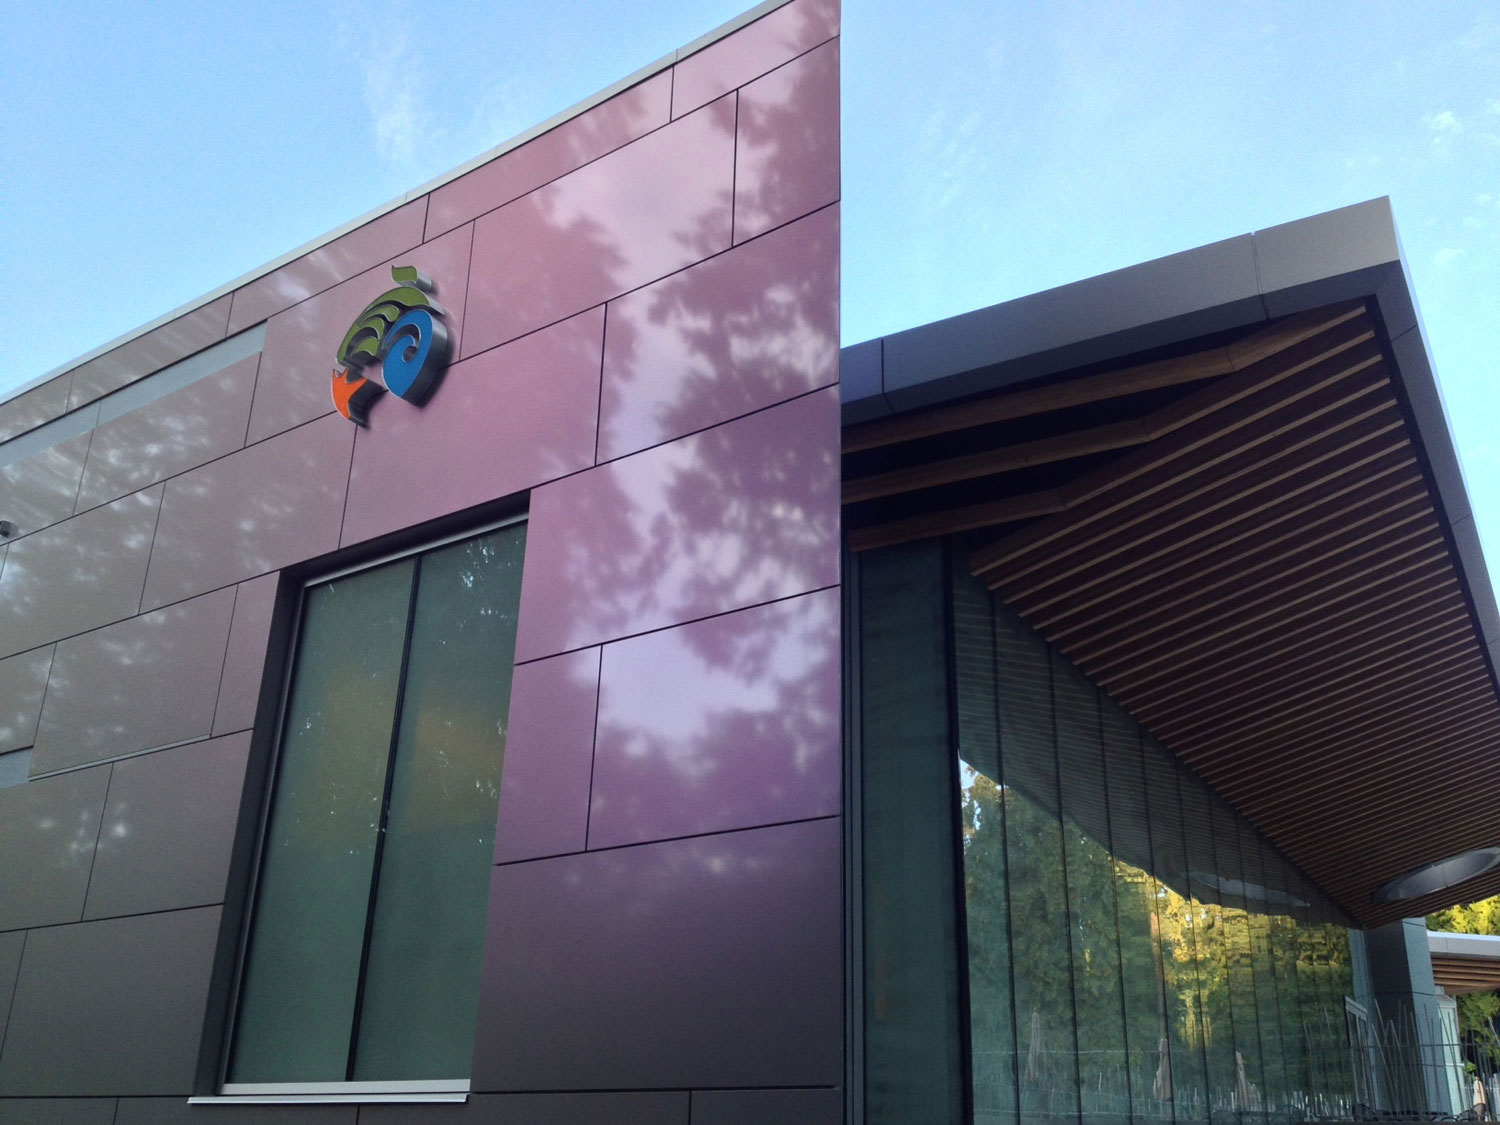 The Vancouver Aquarium Expansion, British Columbia, Musson Cattell Mackey Partnership, Keith Panel Systems, Alucobond ACM, Photography Keith Panel Systems